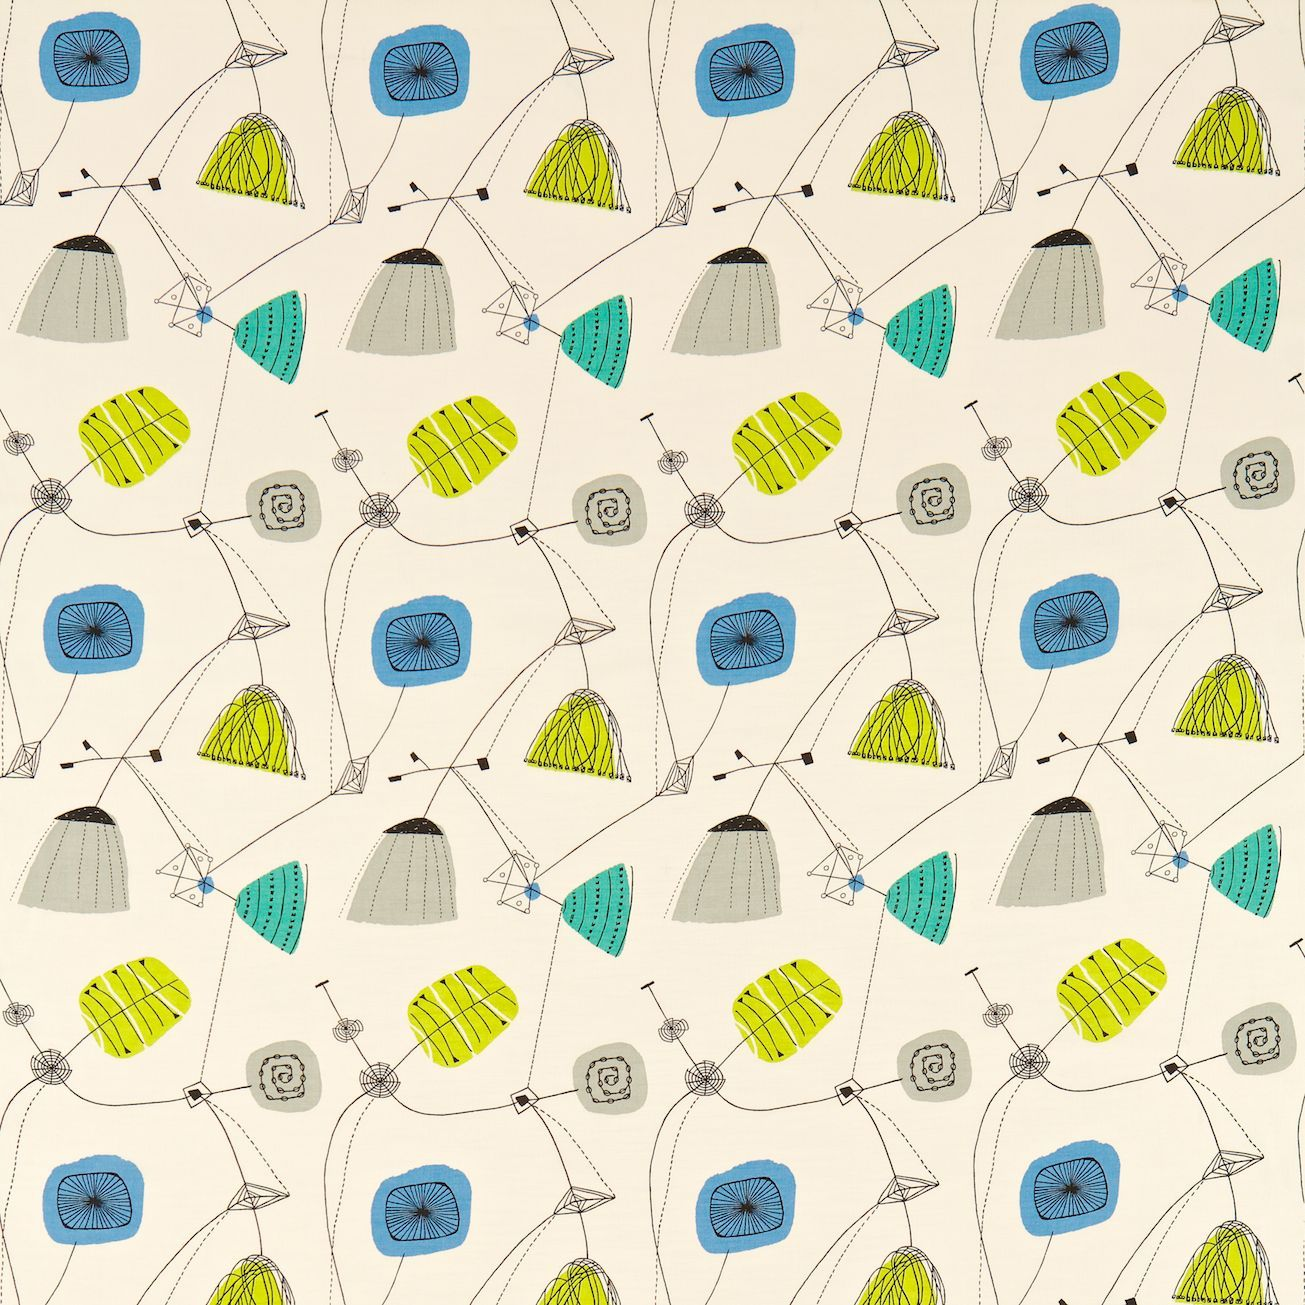 Sanderson Perpetua Fabric Designer Fabrics And Wallpapers By Sanderson,  Harlequin, Morris, Osborne, Little And Many